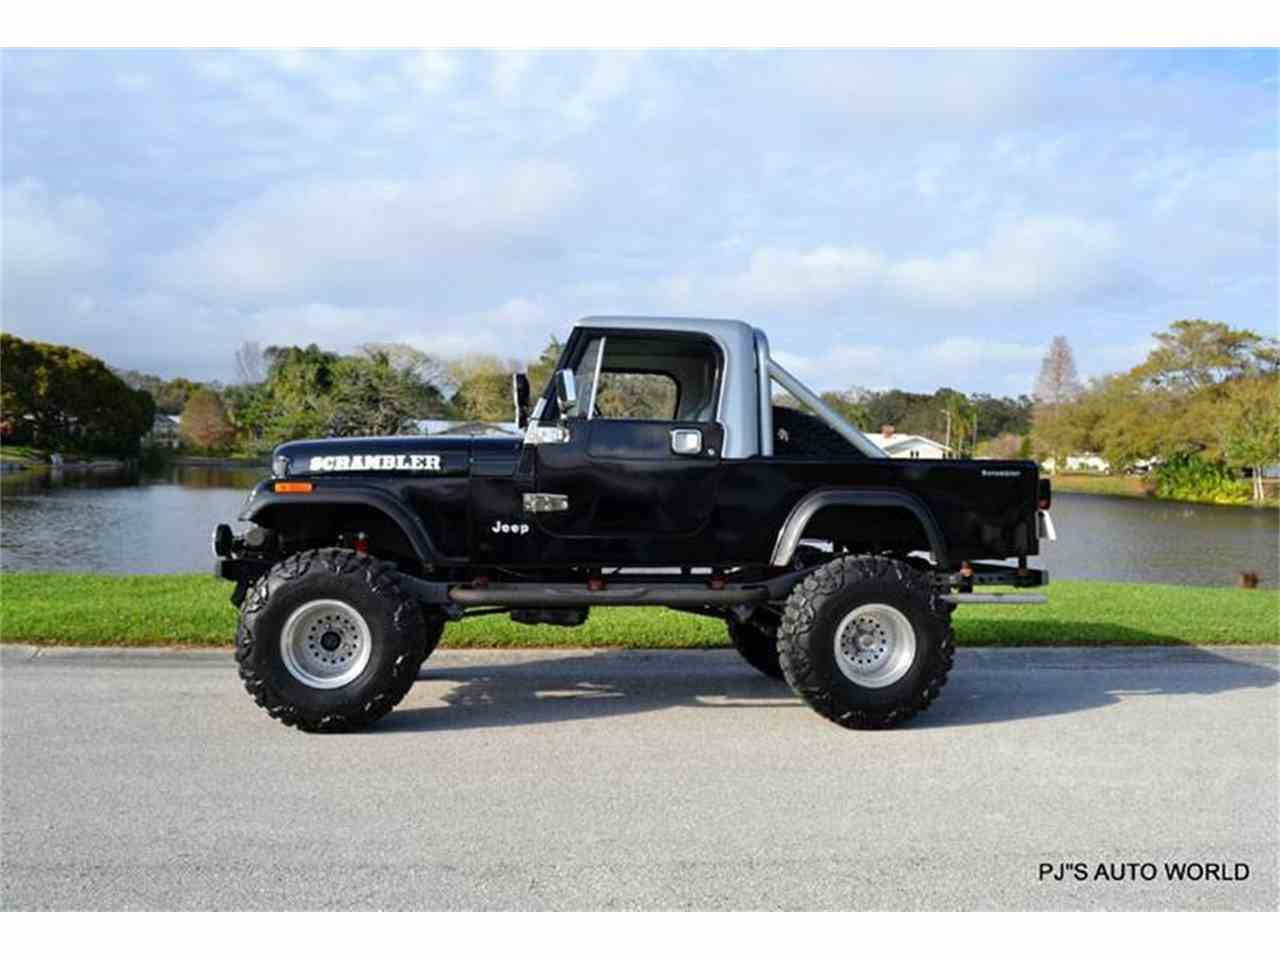 Jeep Renegade Desert Hawk 5 together with 5 Things To Know About The Jeep Grand Cherokee Altitude additionally 1982 Jeep Scrambler Sport also This Xj Jeep Cherokee Has The Worlds Coolest Trailer together with How To Be A Lady. on jeep cj fun